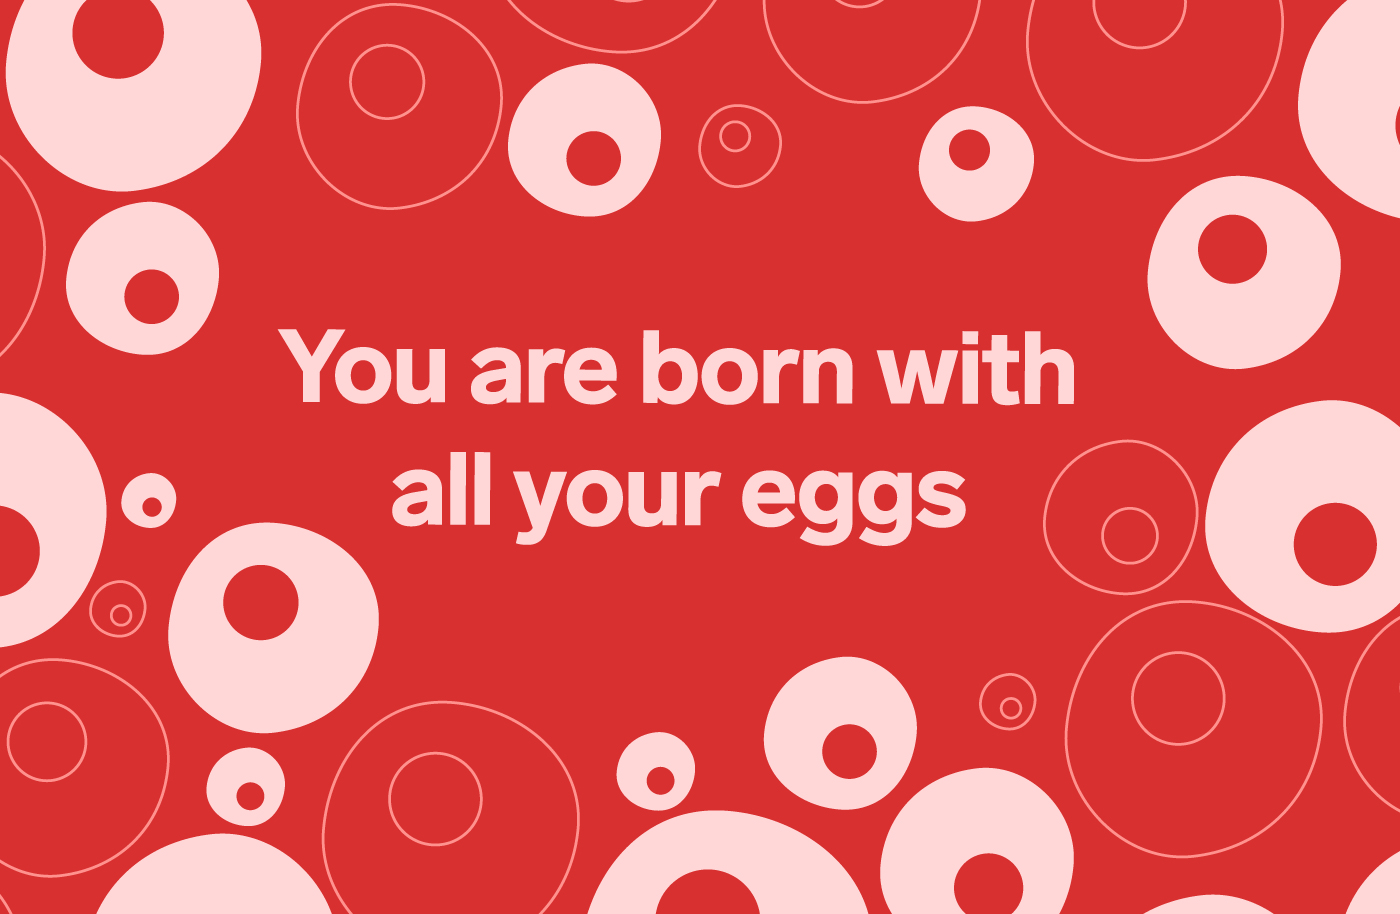 Pink egg cells on a red background with the text 'you are born with all your eggs'